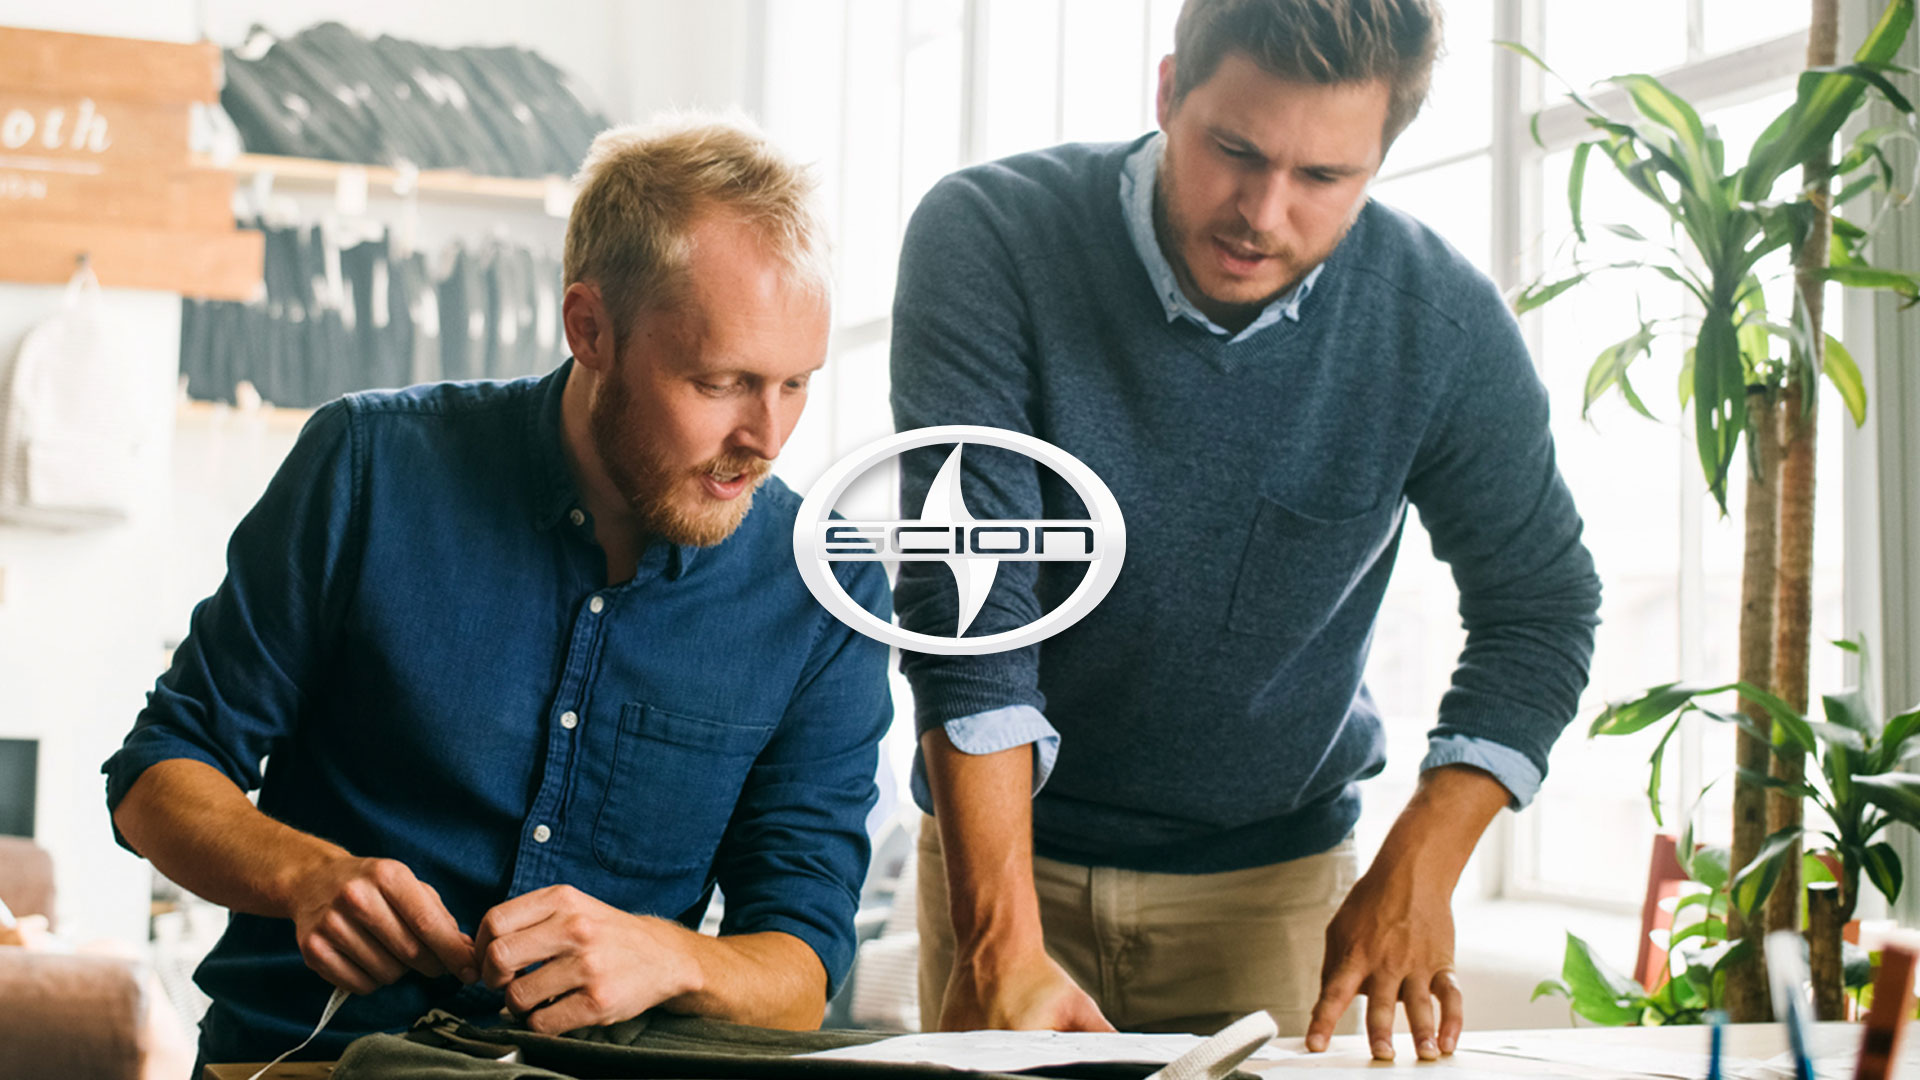 Scion, a Toyota company. - Product launch, Content funnel, Website, Video, Social.